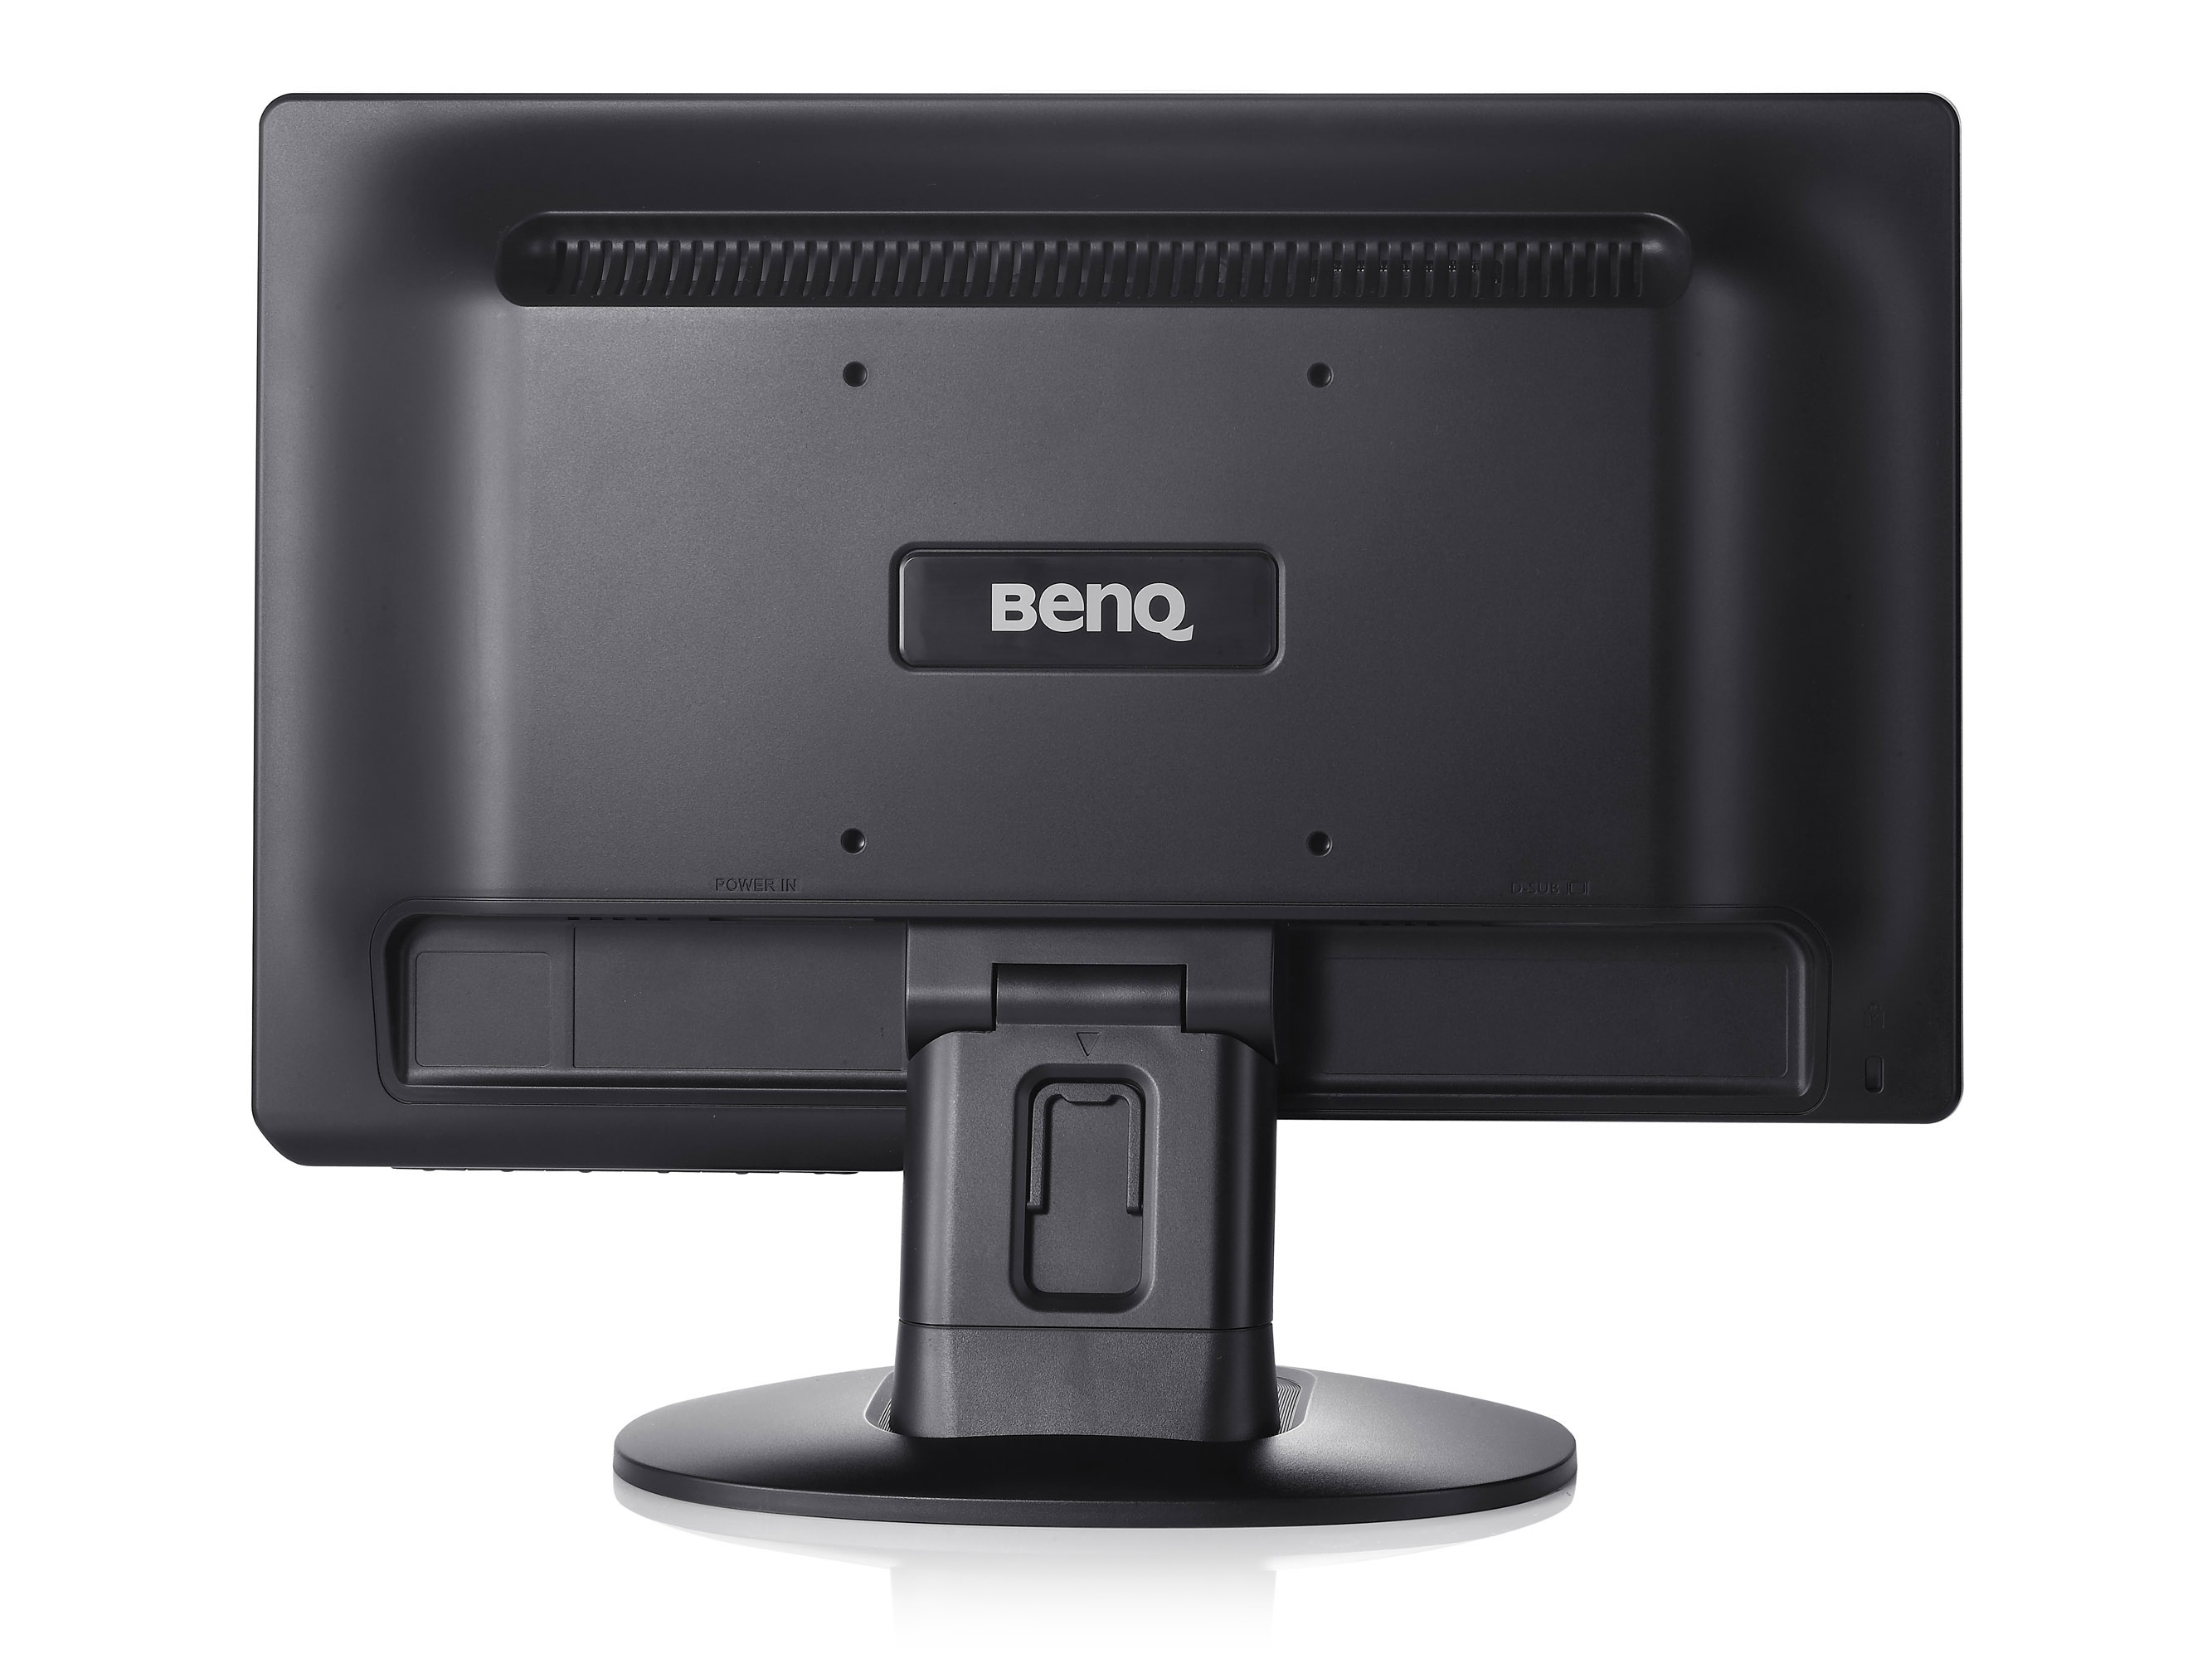 BENQ G610HDAL DRIVER WINDOWS XP